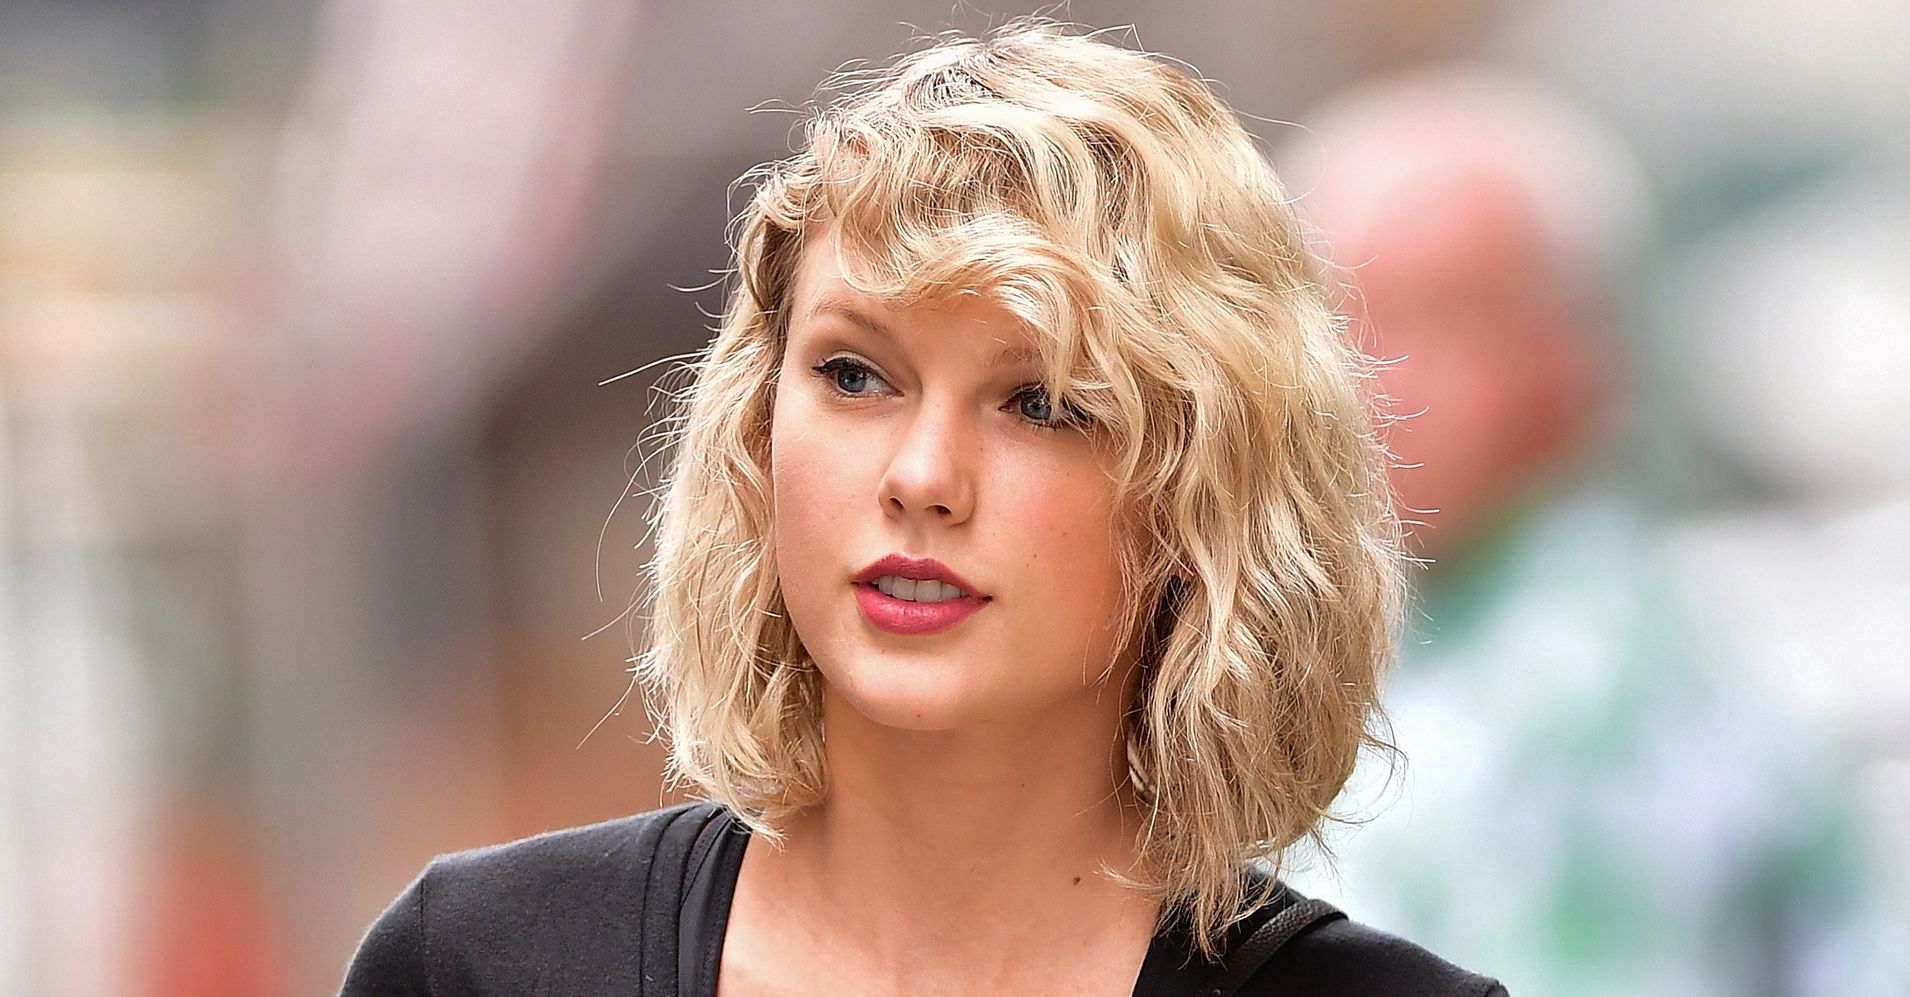 Taylor Swifts Curly Hair Has Everybody Thinking Shes Returning To